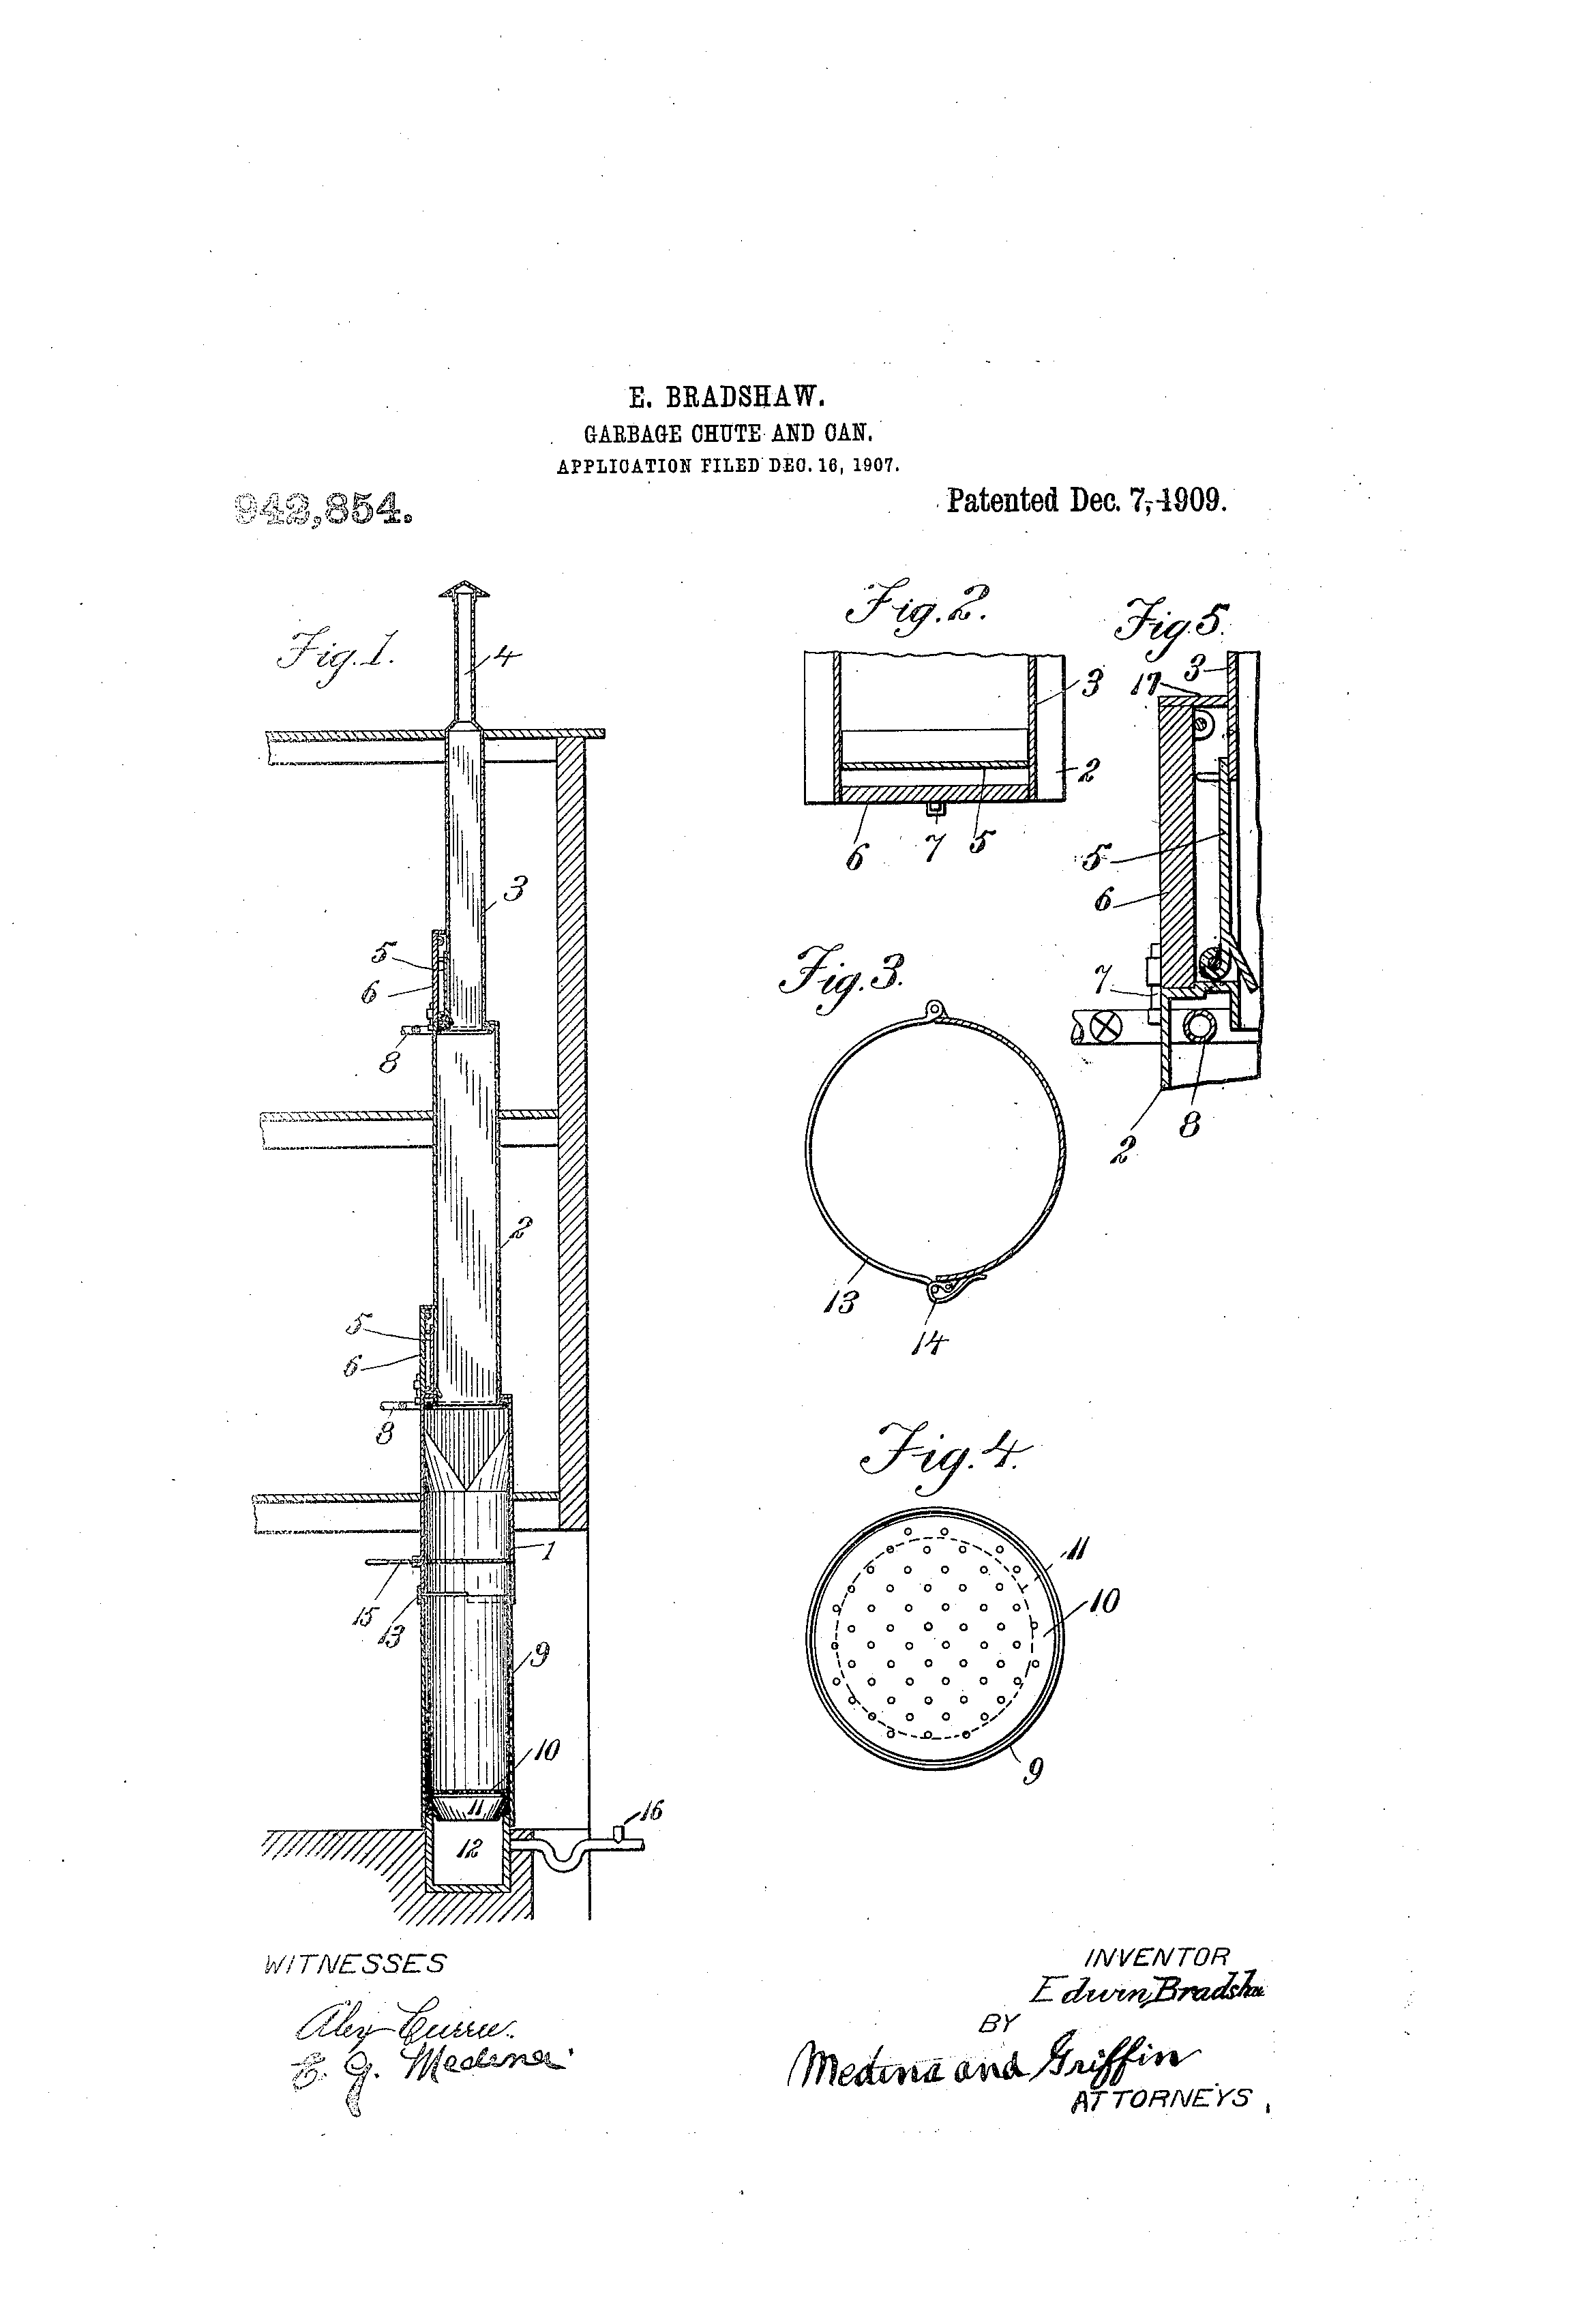 Trash Chute Details : Patent us garbage chute and can google patents